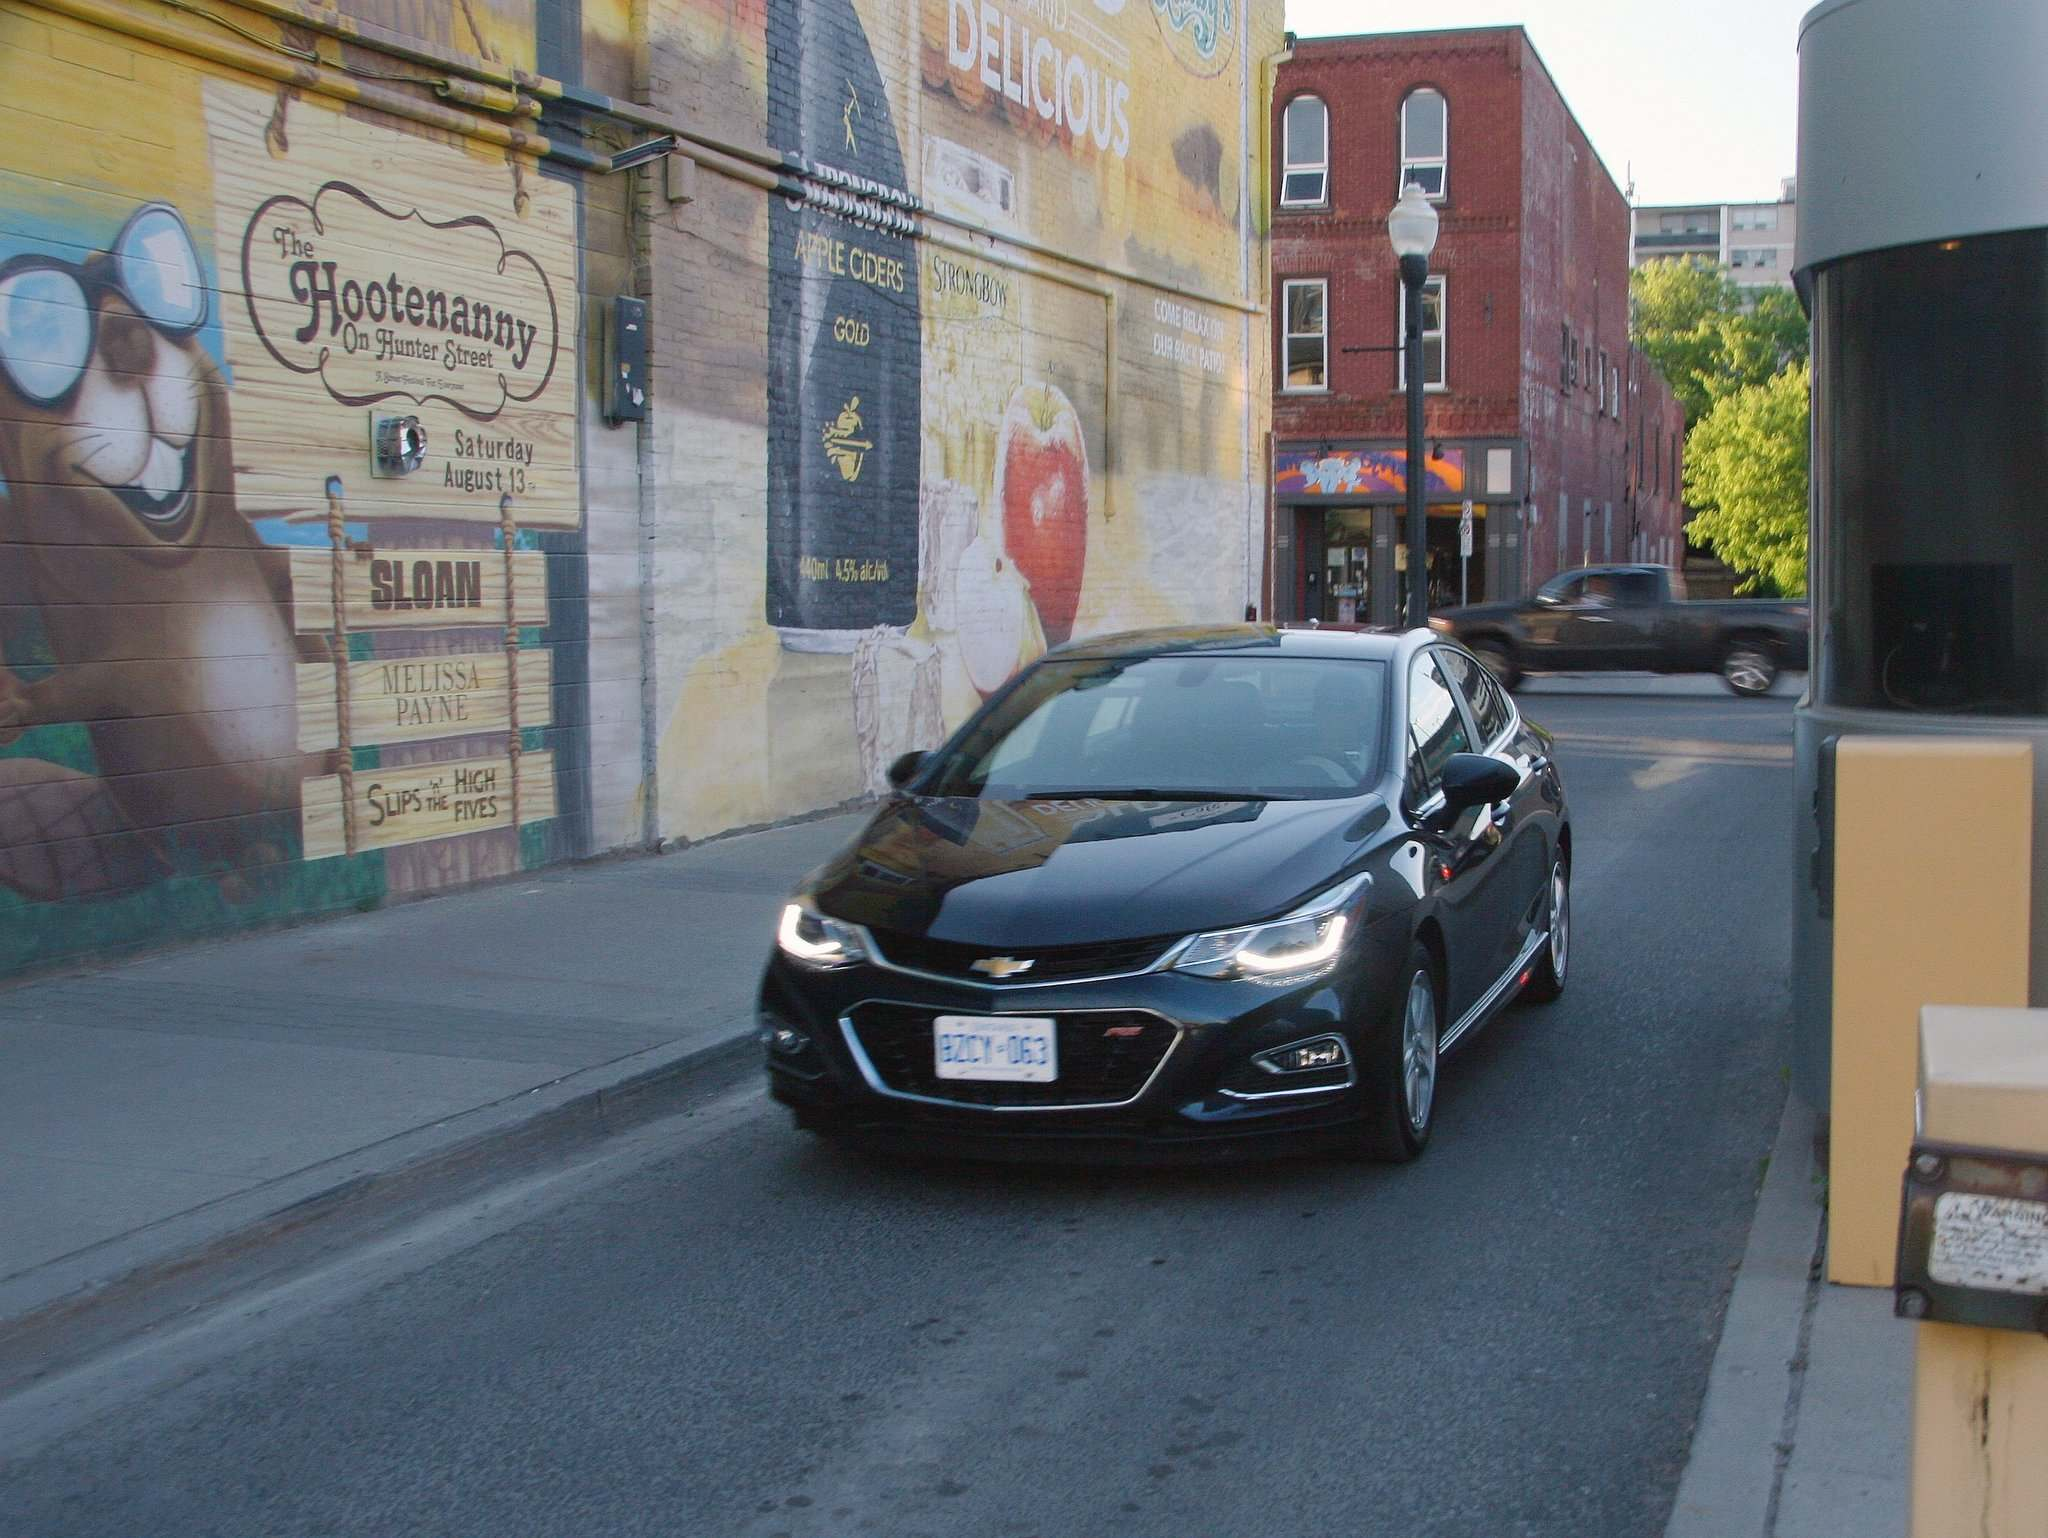 Photos by Leslie Wimbush / Postmedia Network Inc. Completely redesigned for 2016, the Cruze no longer looks destined for a Budget Rent a Car lot.